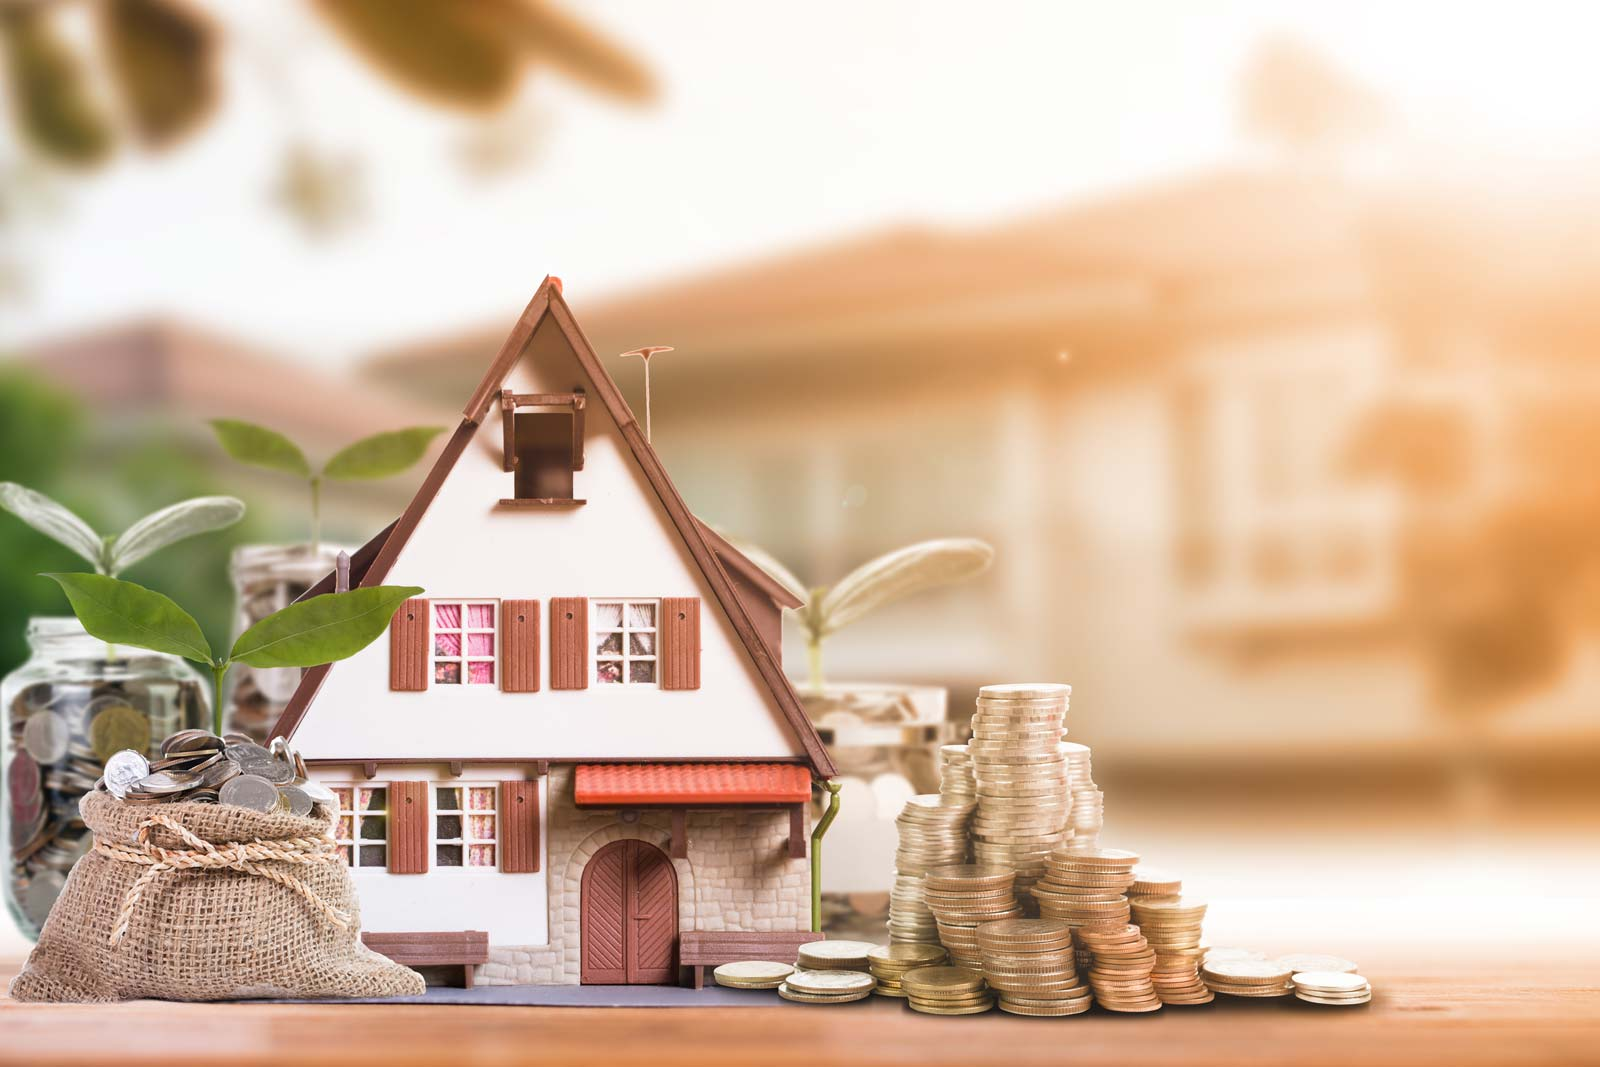 What Best Determines Whether a Borrower's Investment on an Adjustable-Rate Loan Goes Up or Down?